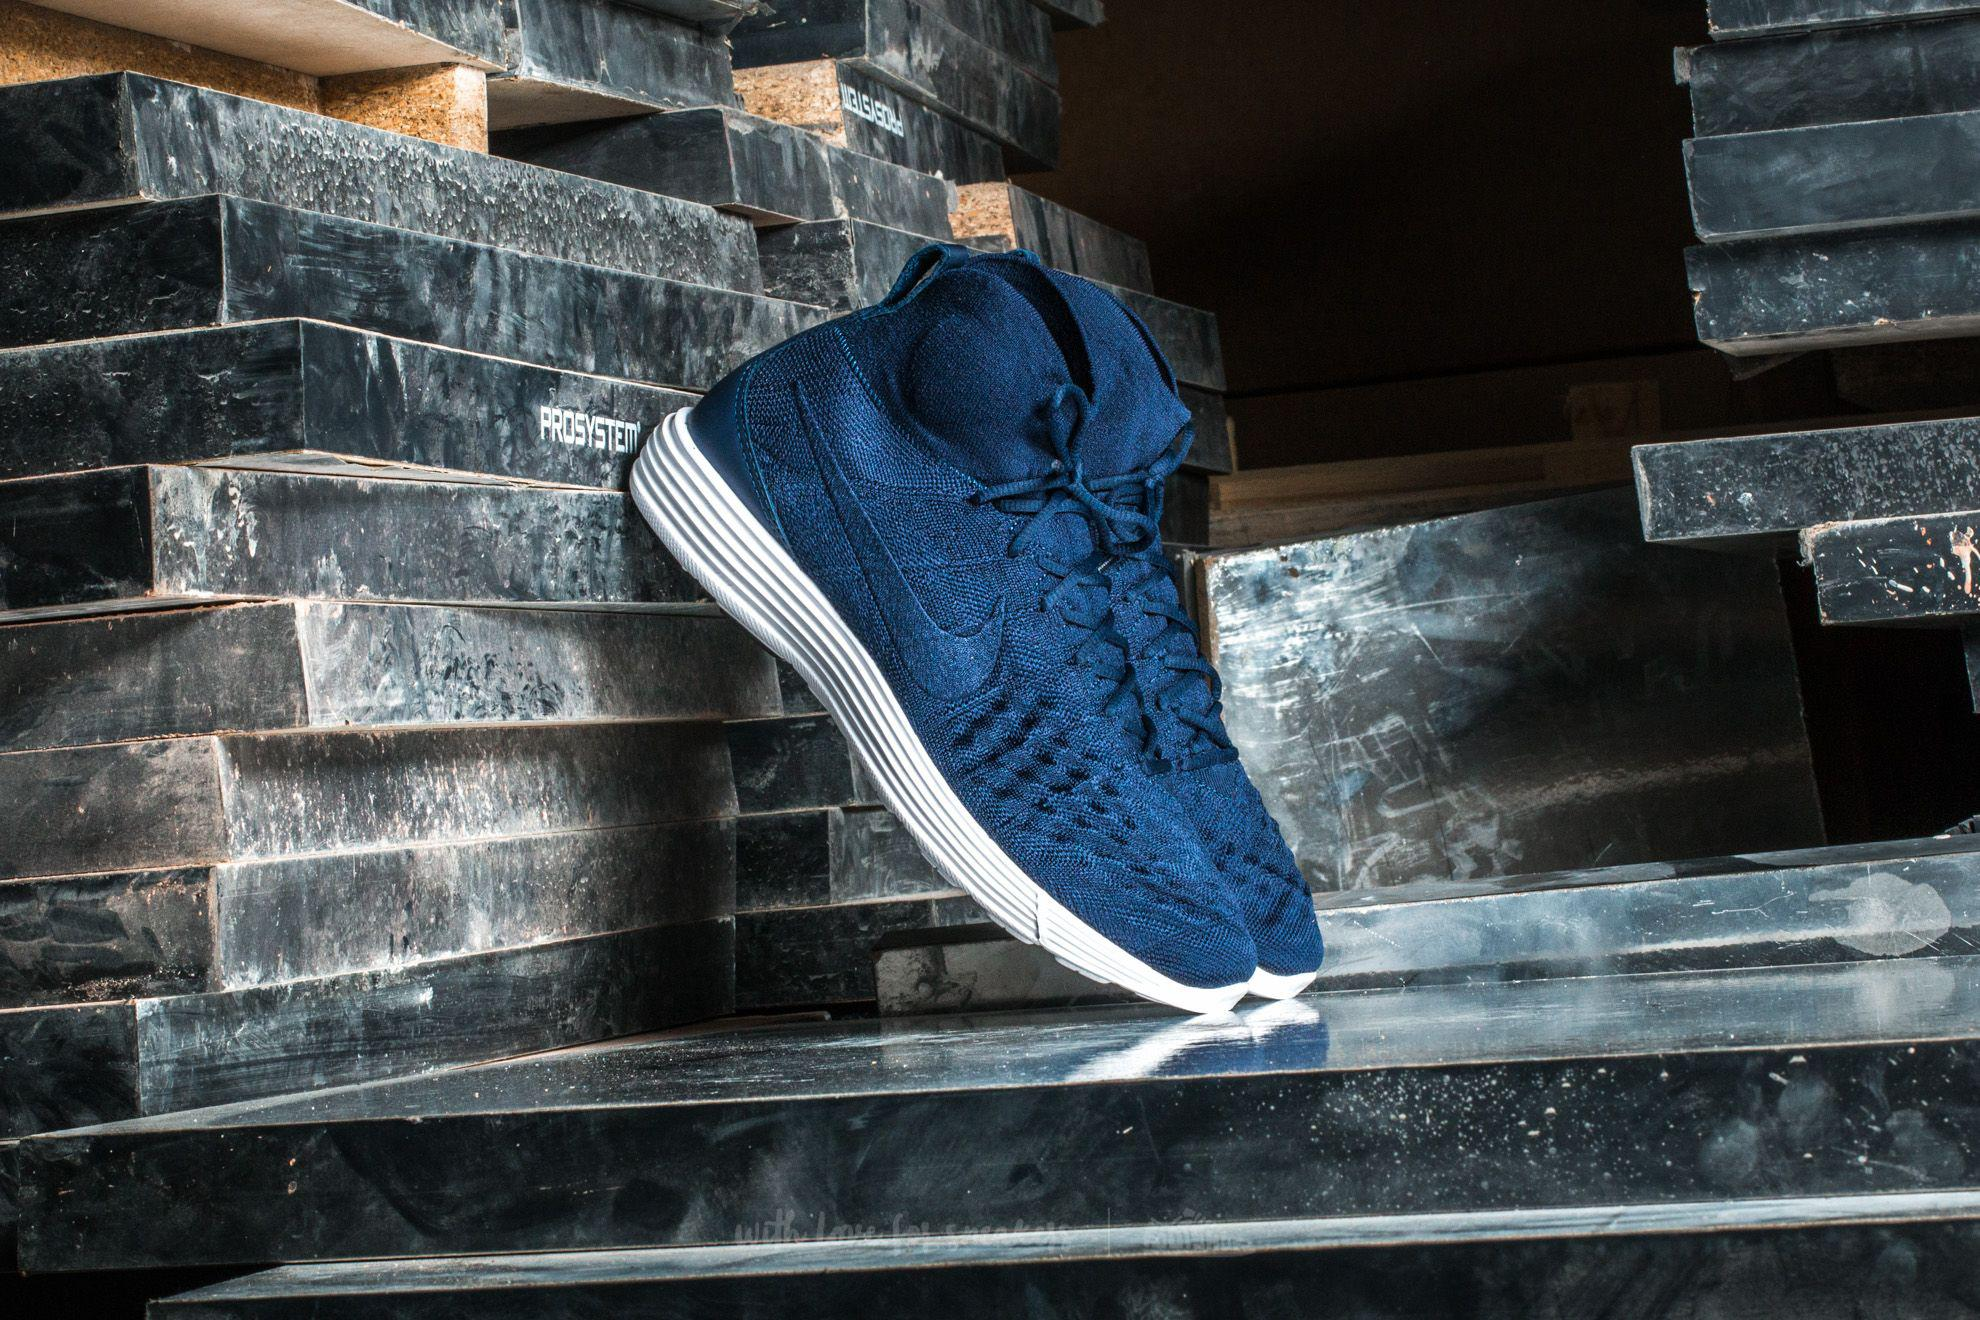 b73f4e3eb732 Nike Lunar Magista Ii Flyknit College Navy/ College Navy in Blue for ...